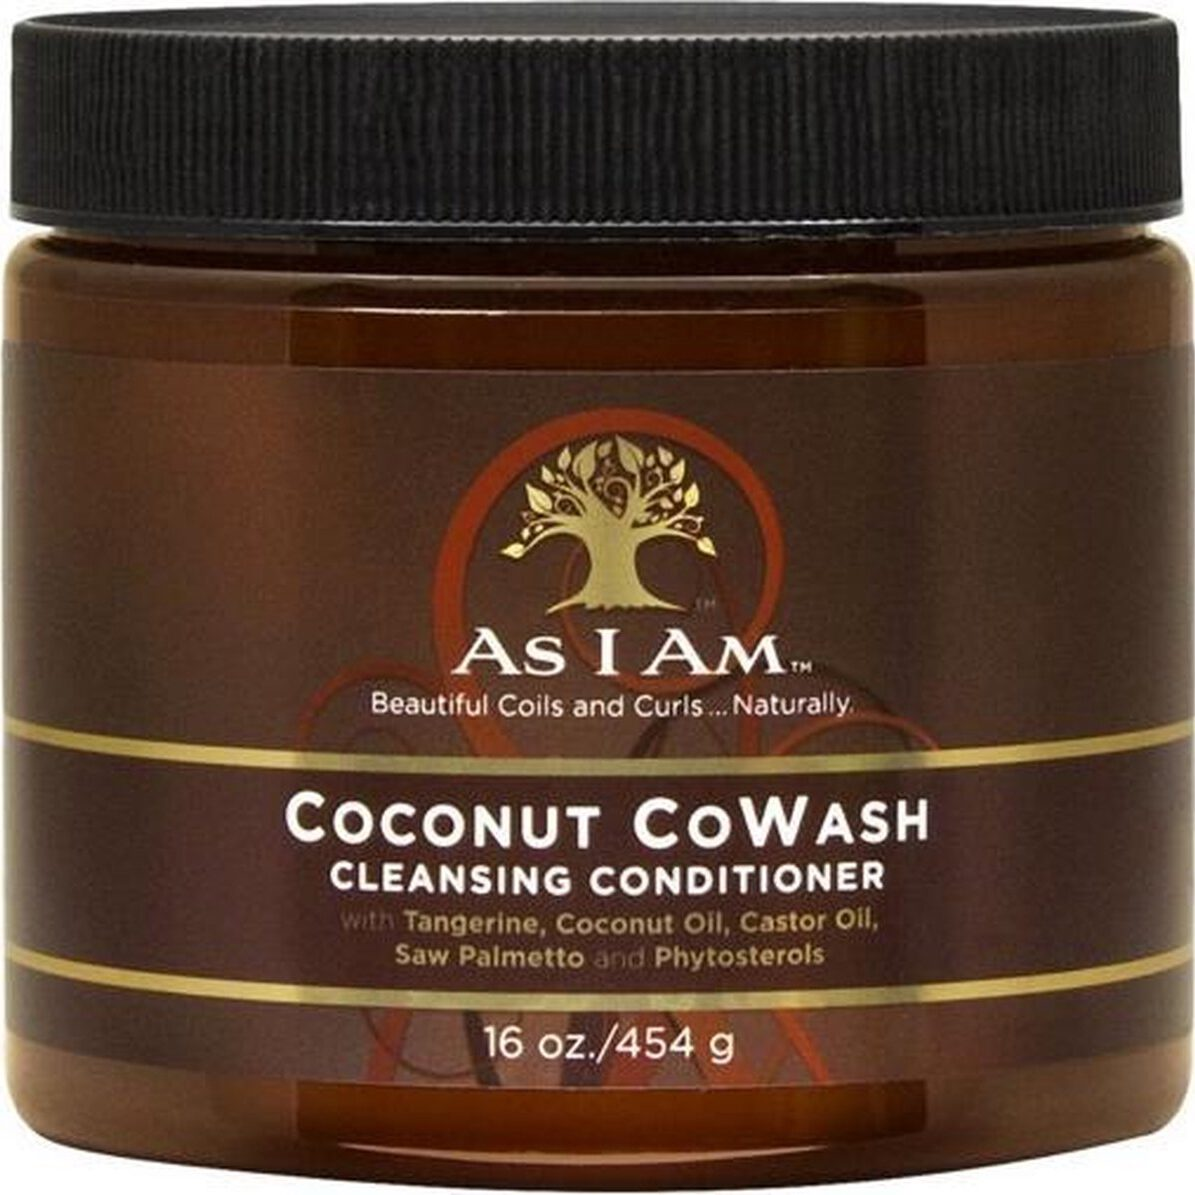 As I am Co wash